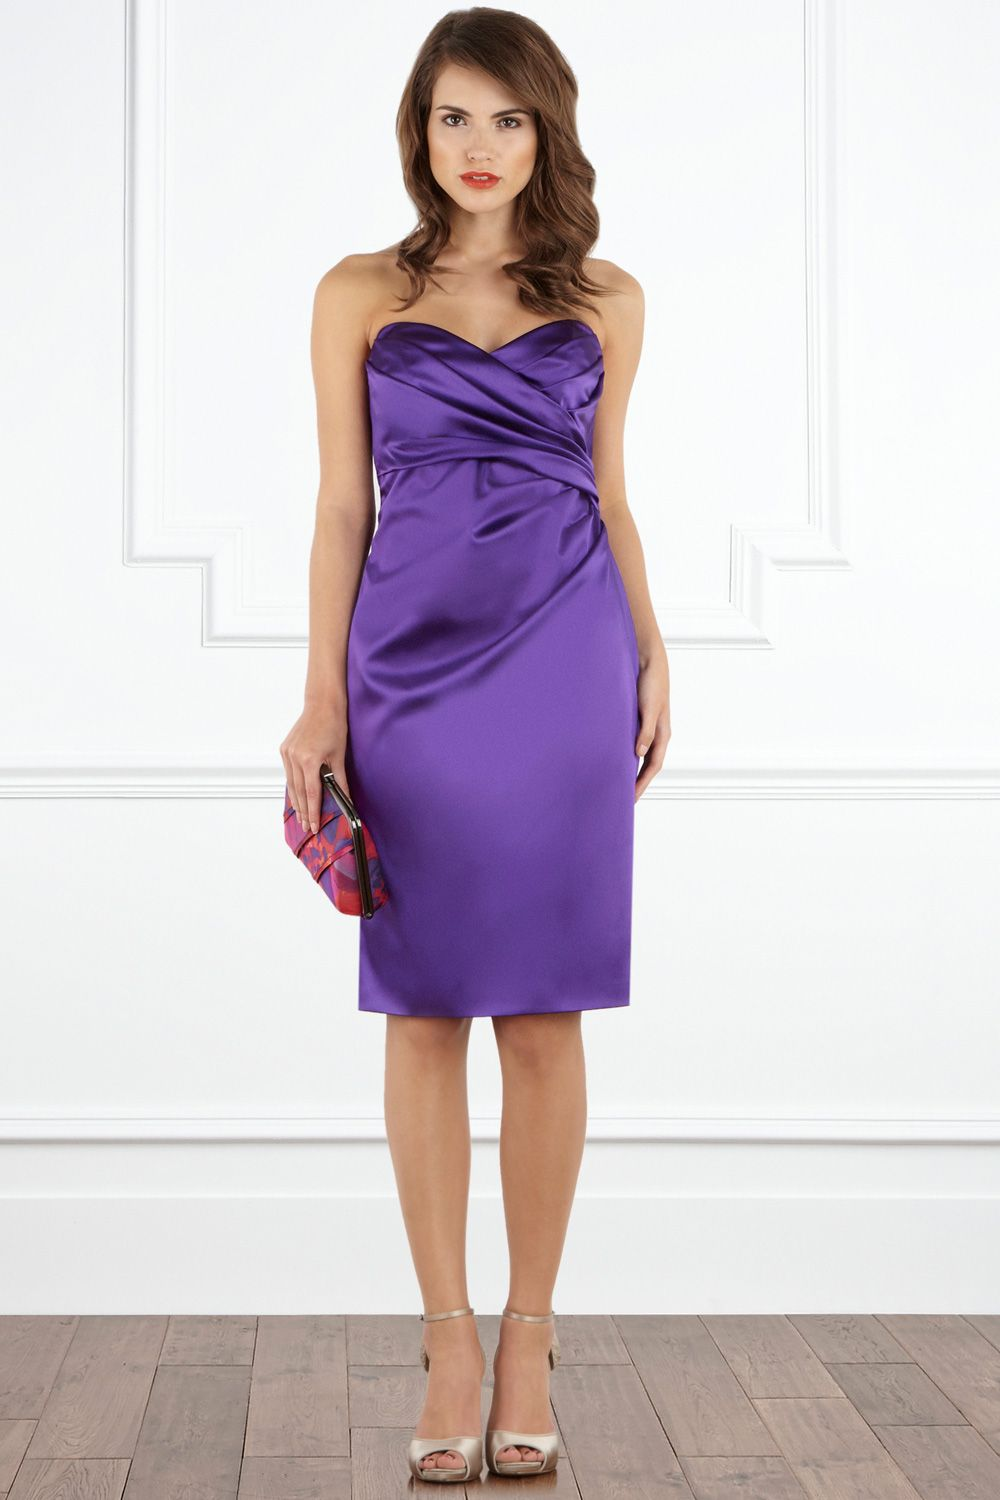 Noemi Bandeau Dress £145 A sharp cocktail style... | Cute Styles ...